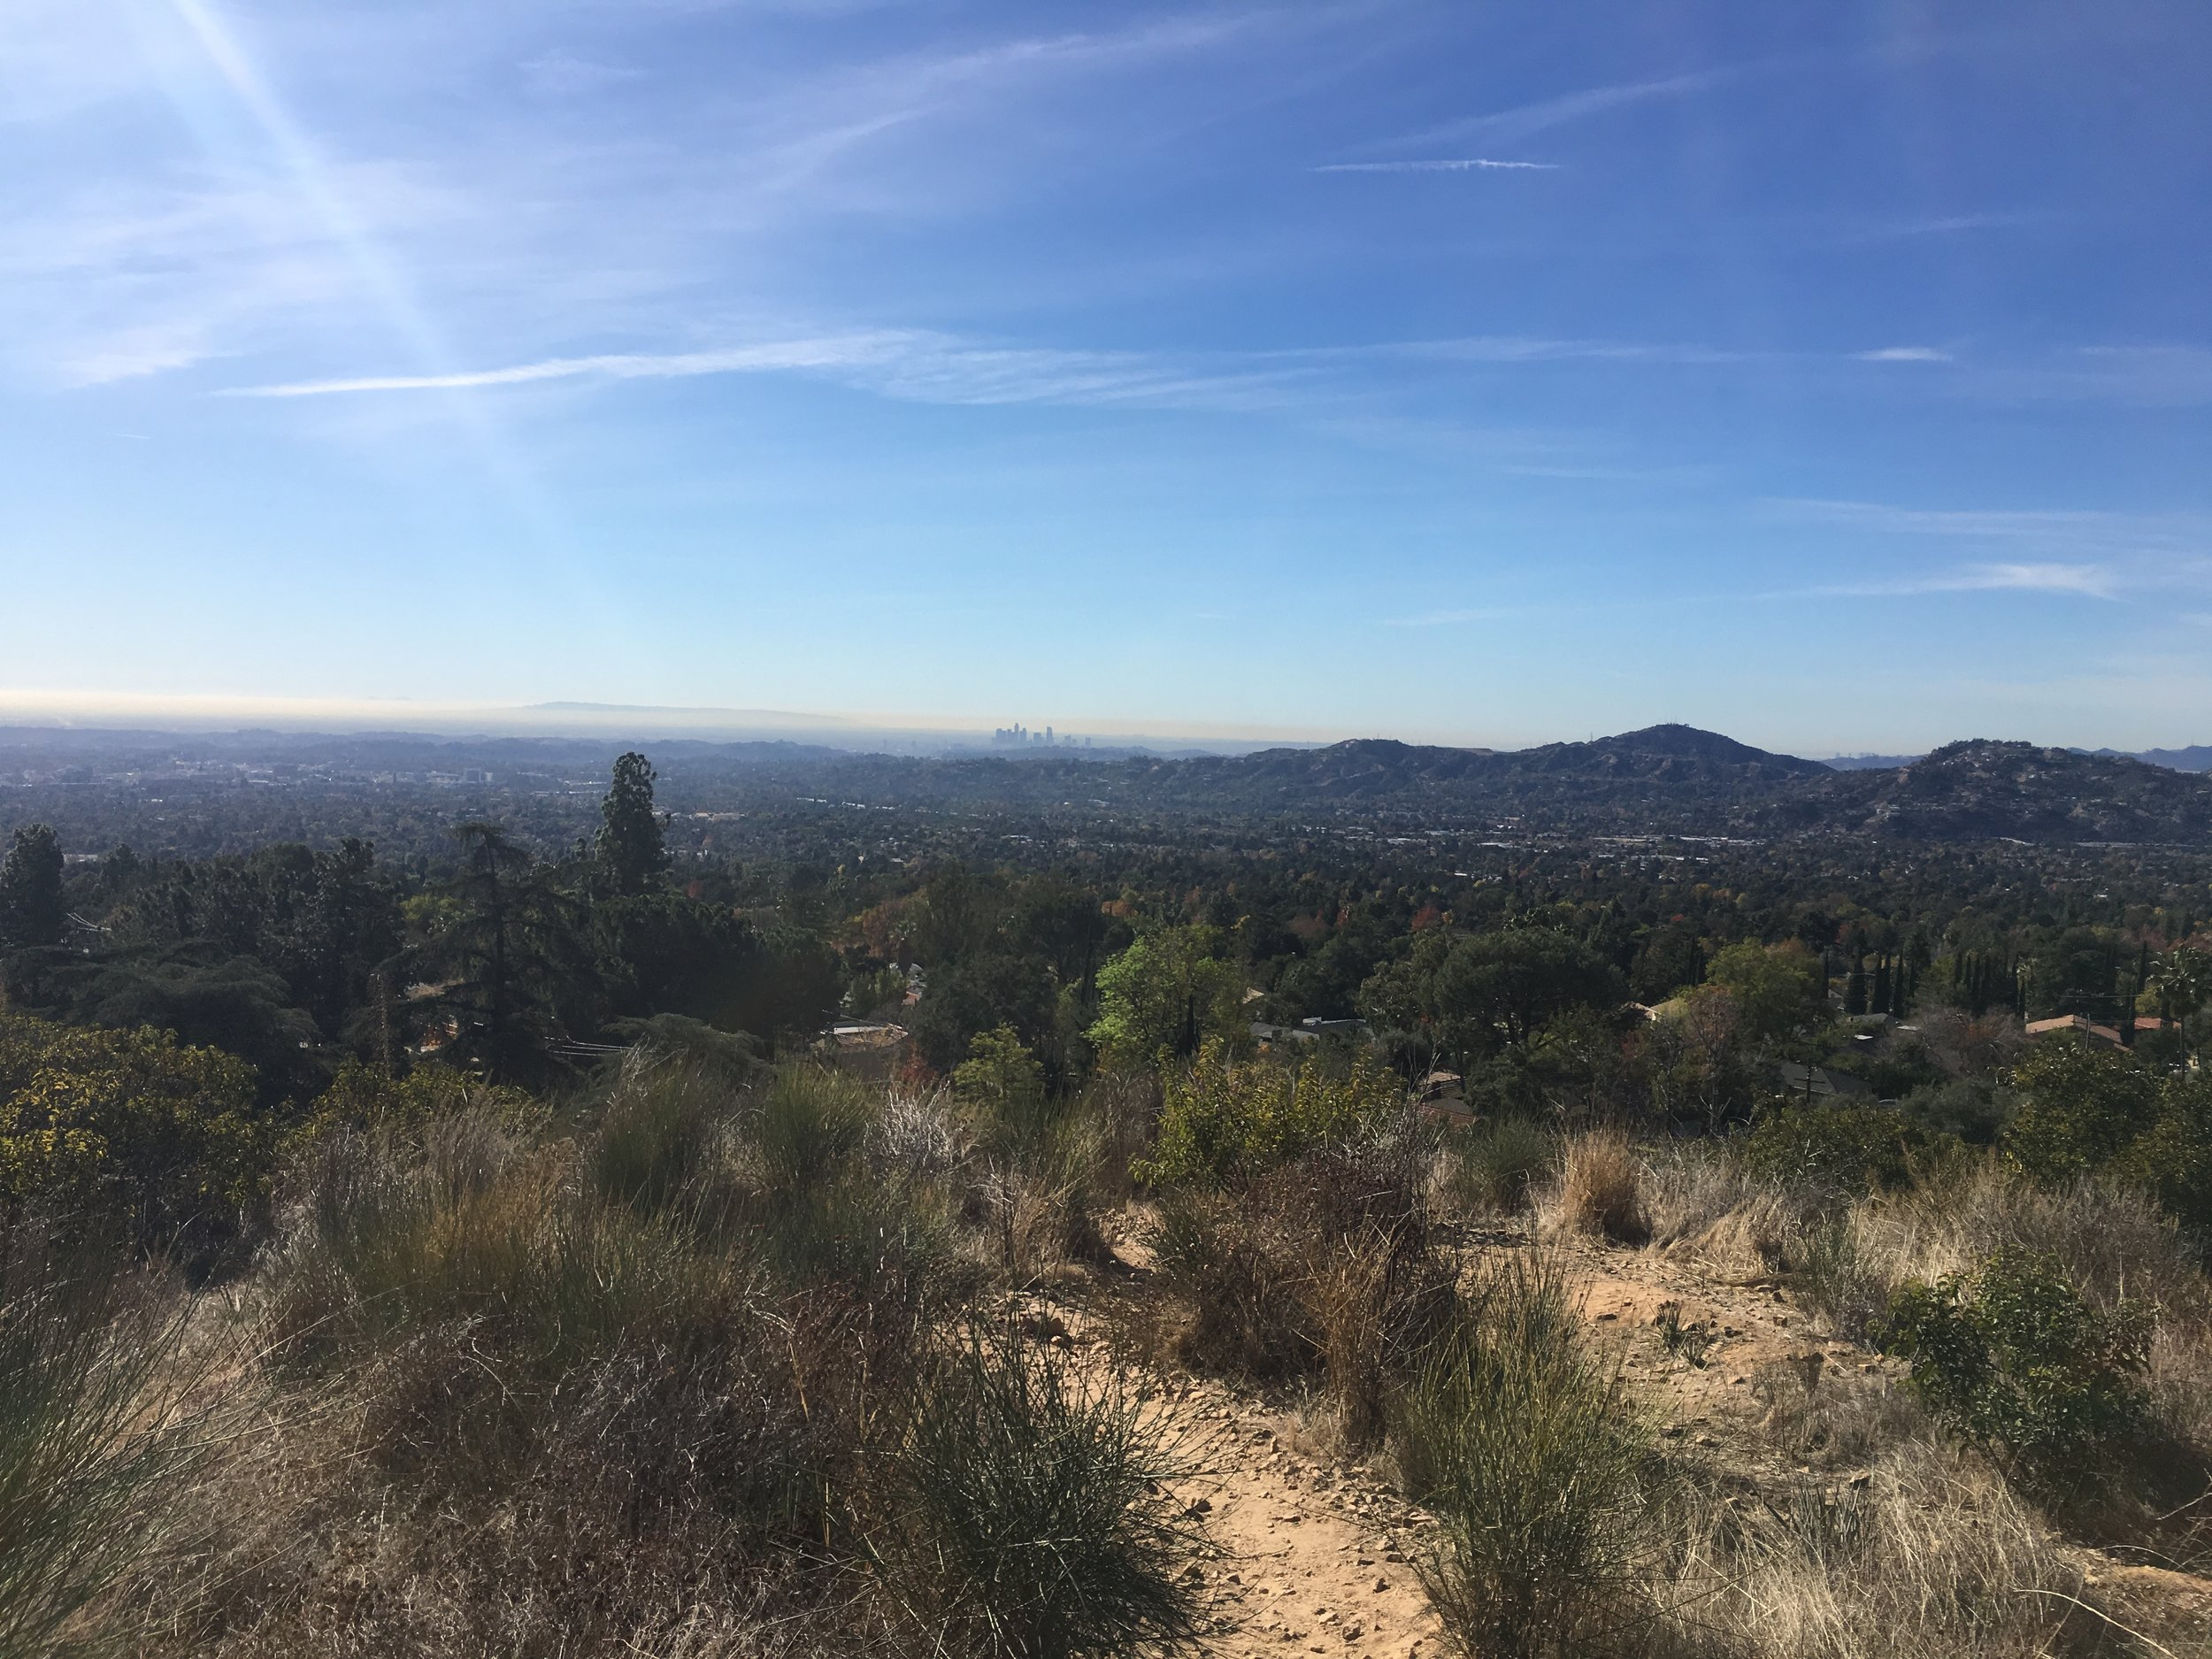 Morning view from Altadena, CA